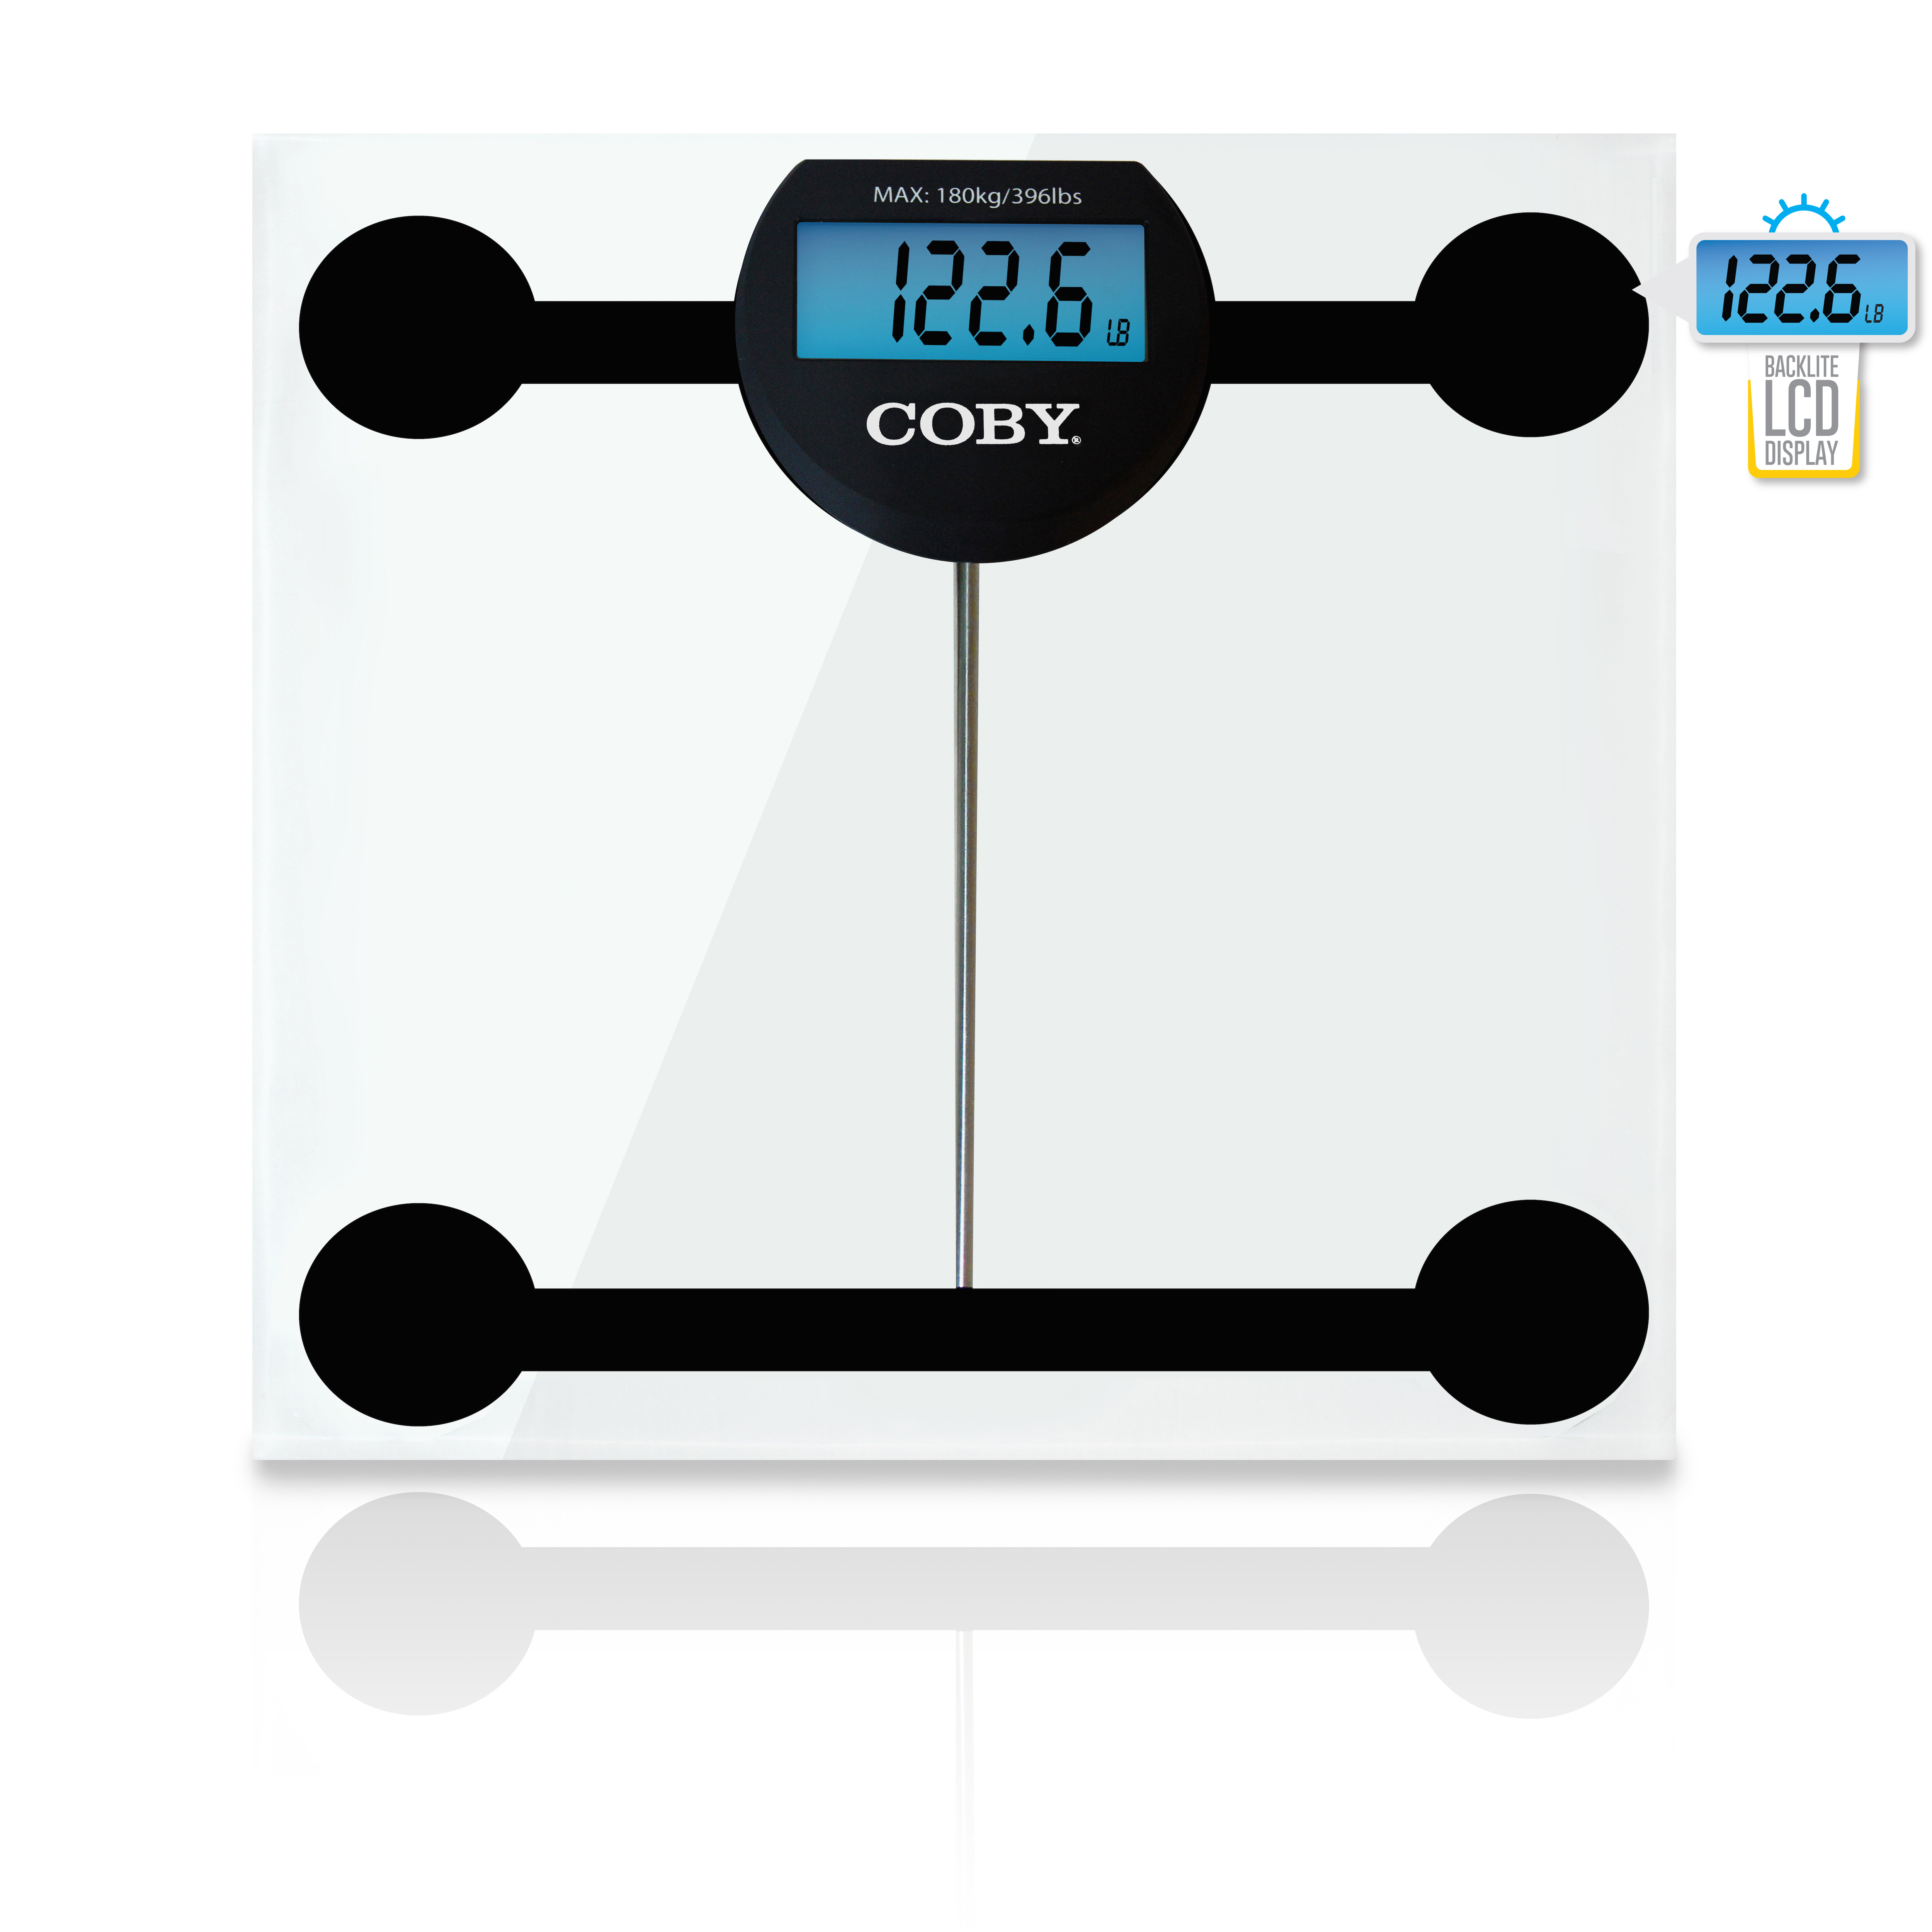 COBY Digital Bathroom Scale with Blue LCD Display